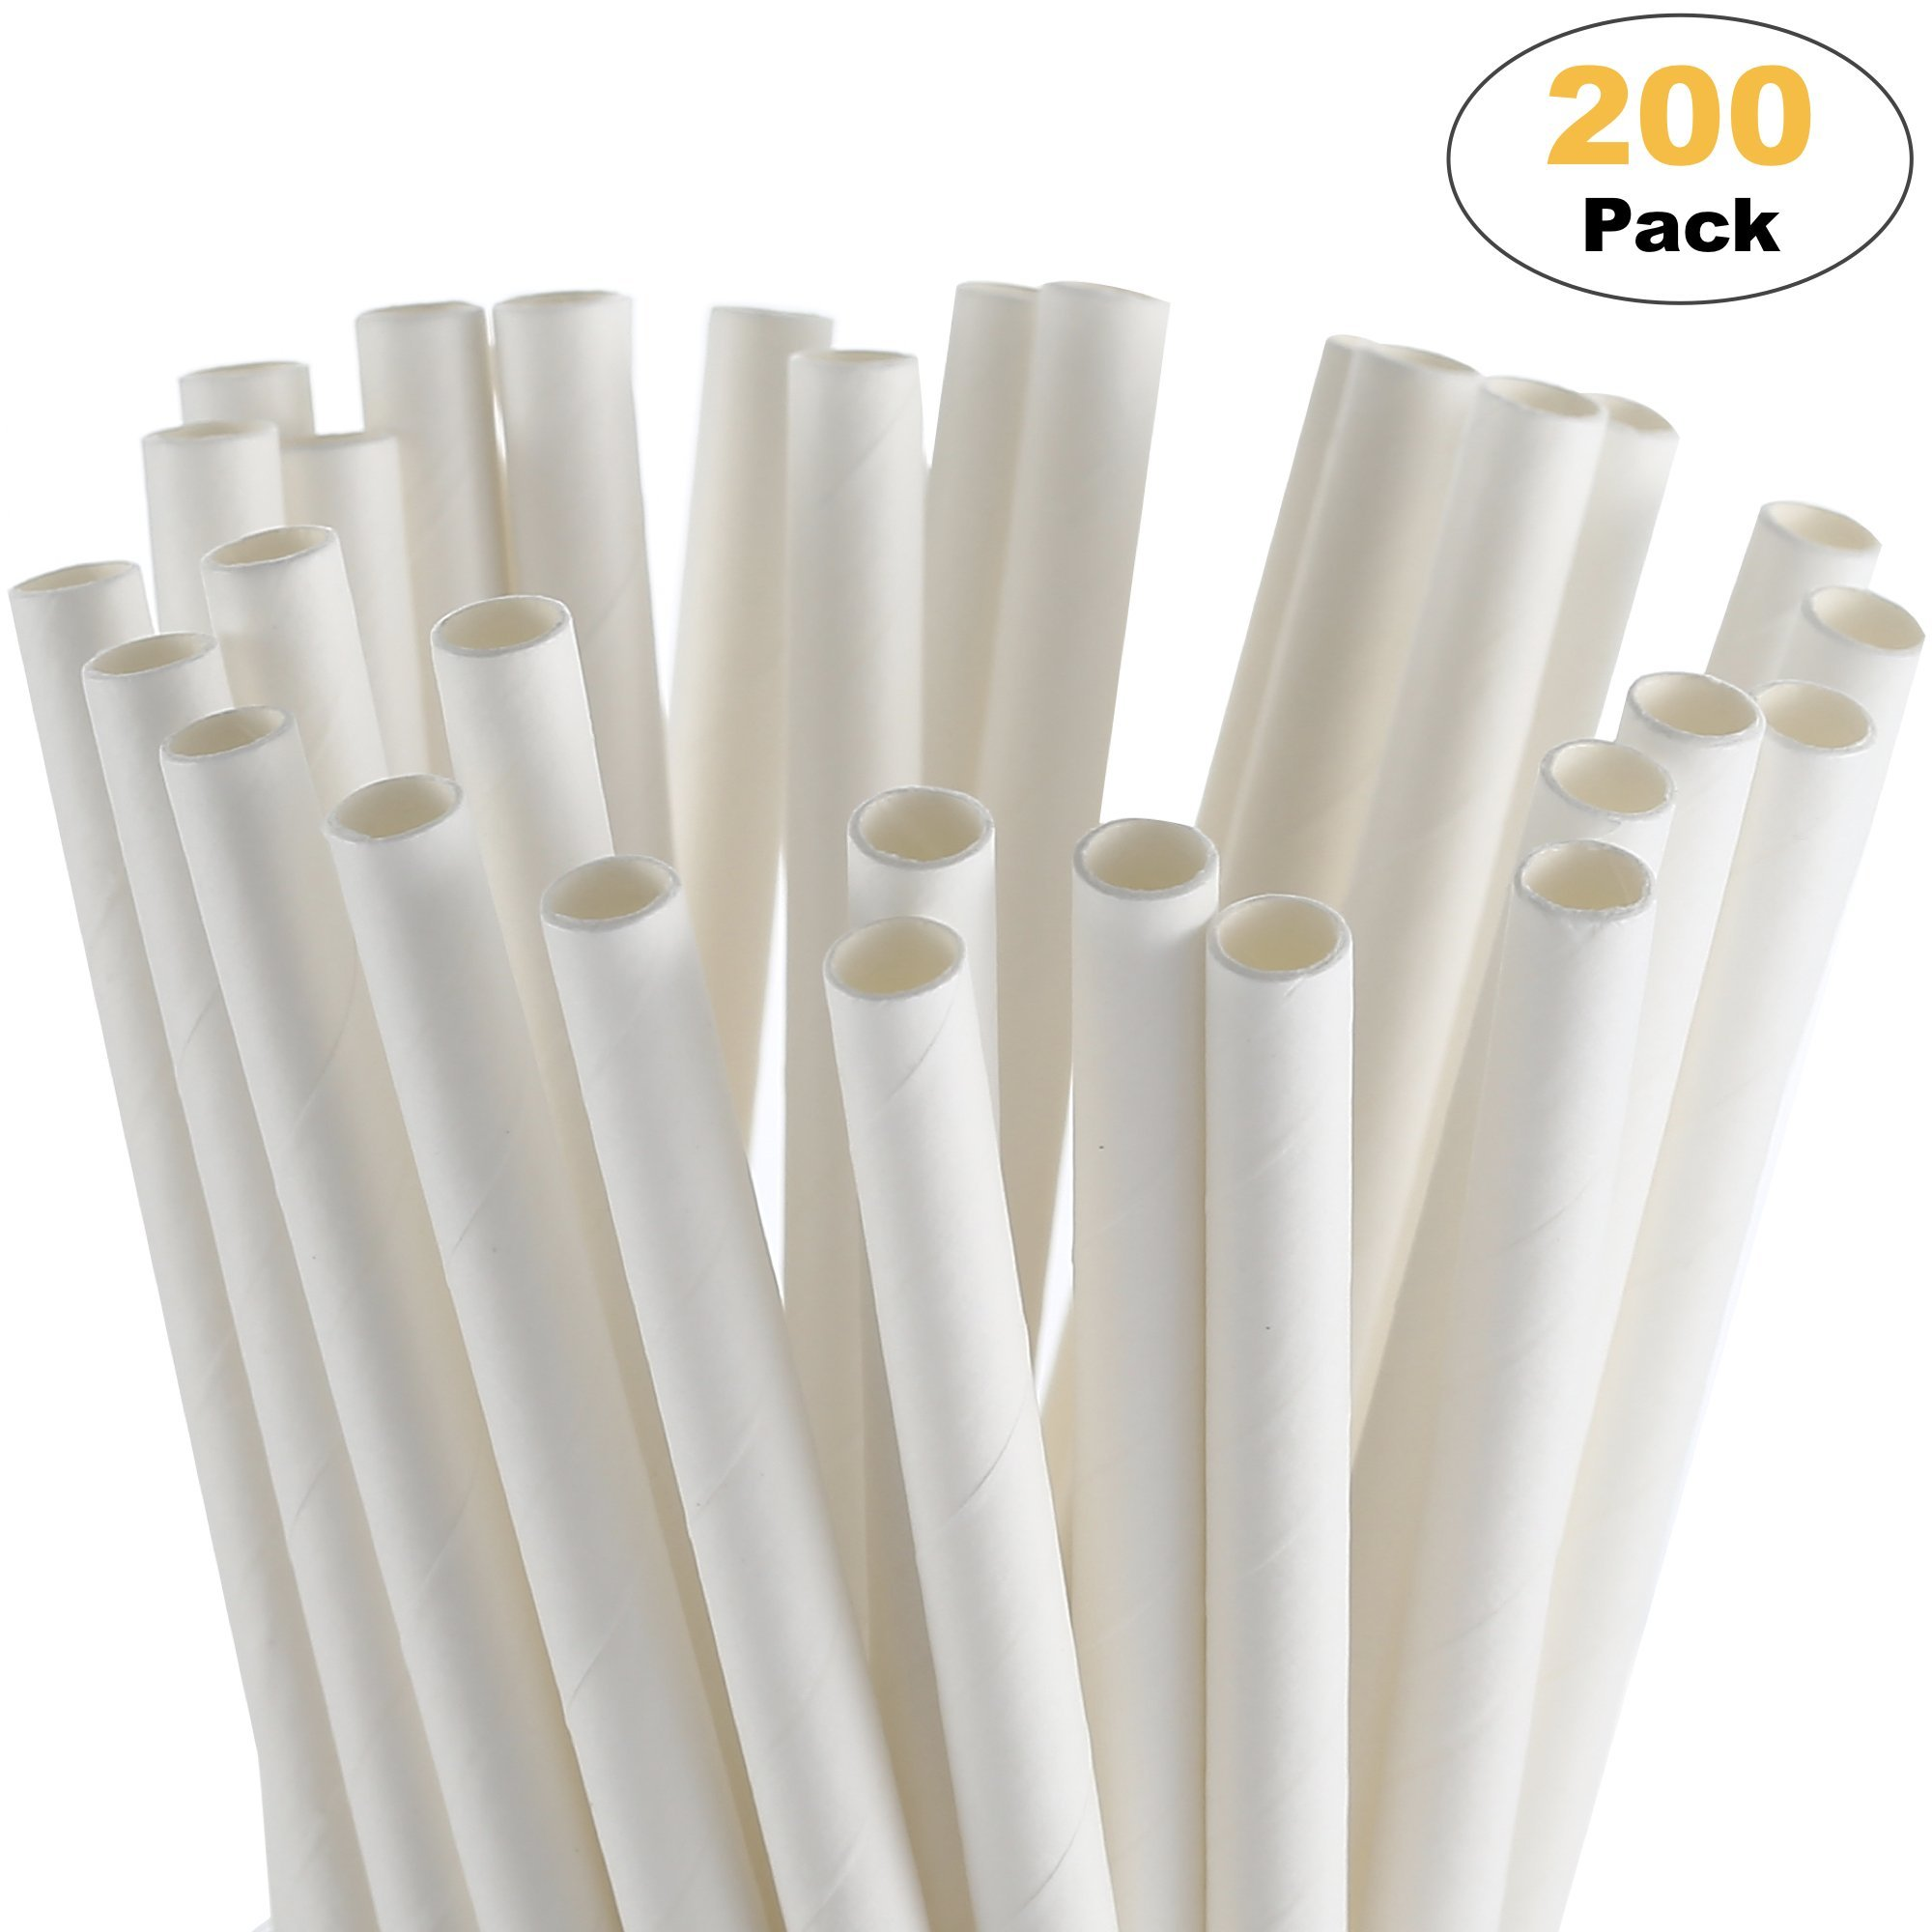 paper straw disposable white 200 pack drinking straws paper party straws biodegradable christmas straws halloween straws coffee bridal shower